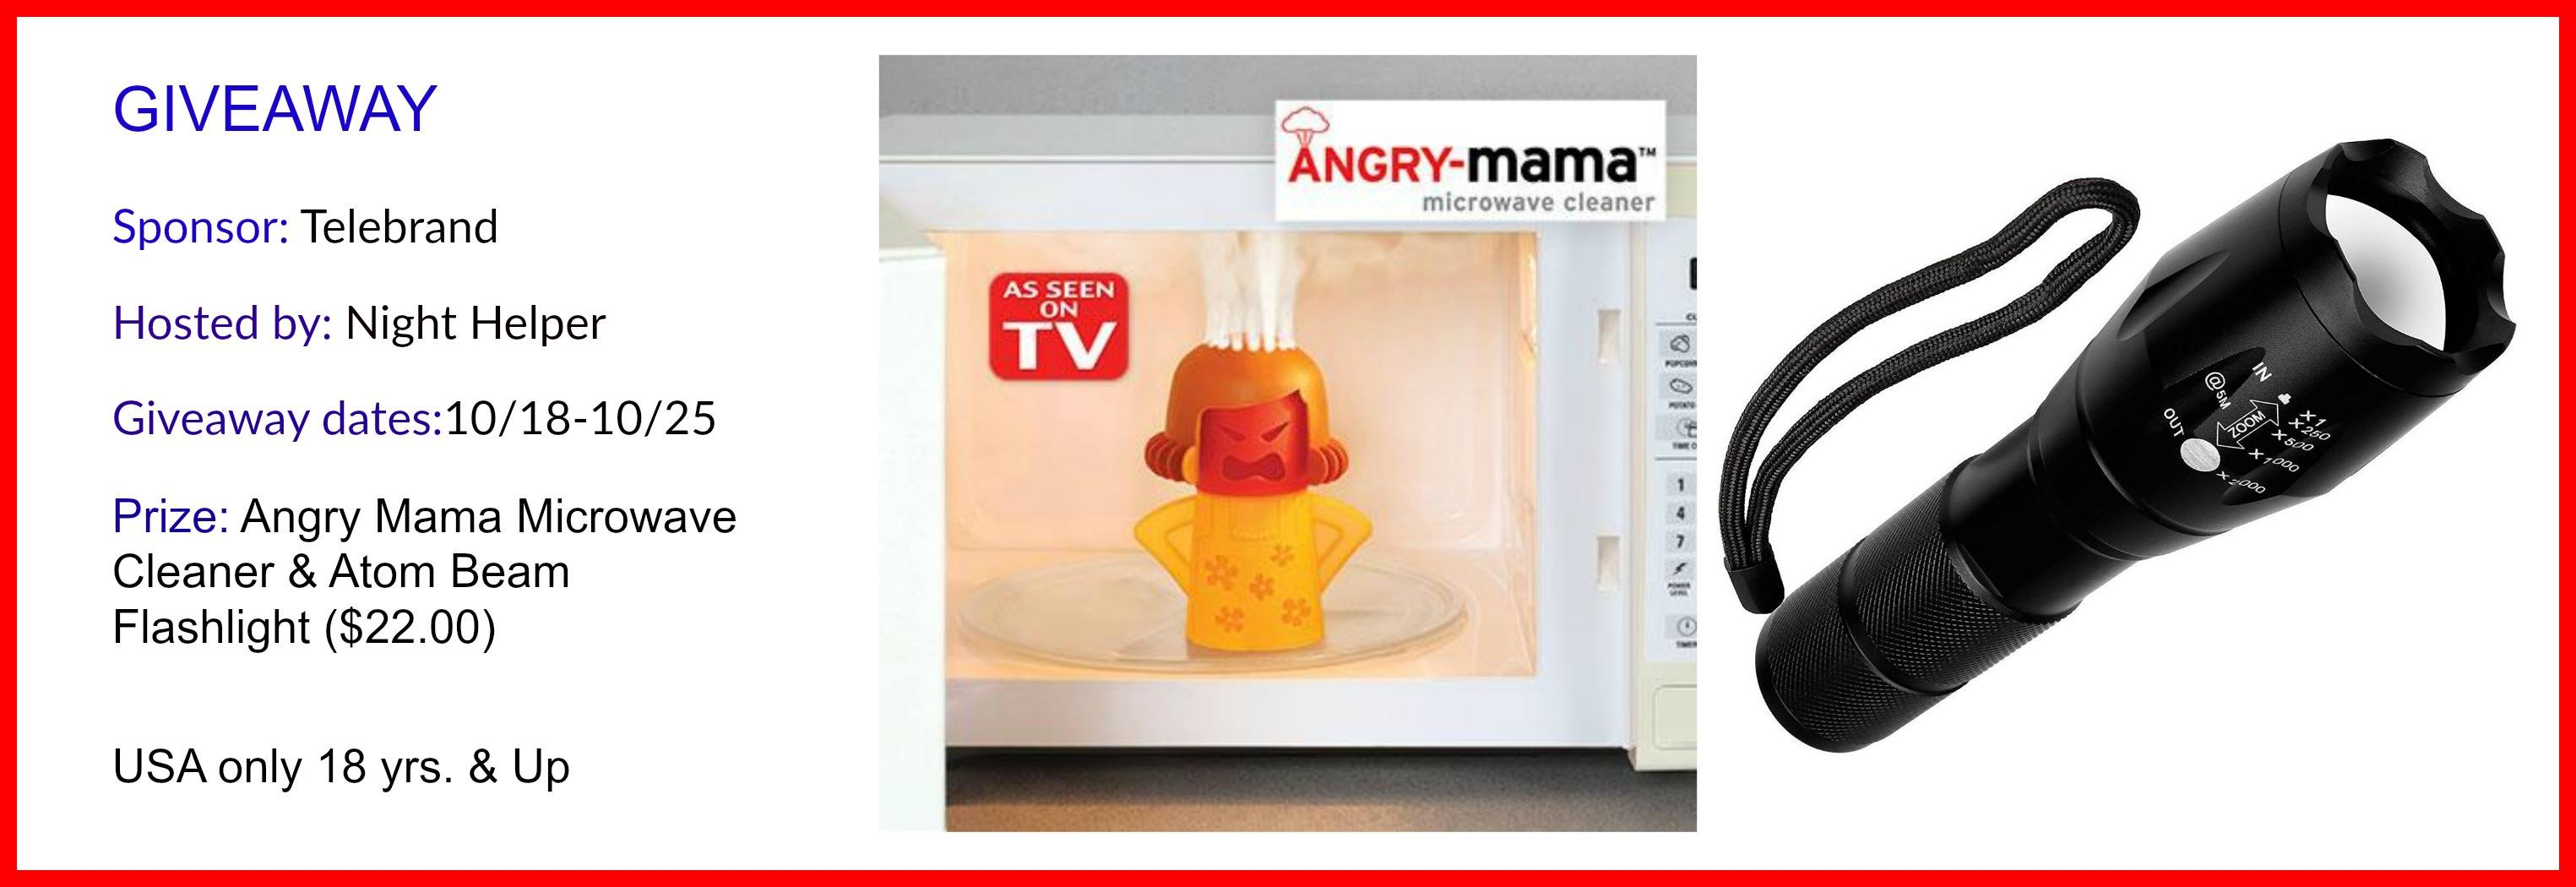 Angry Mama Microwave Cleaner & Atom Beam Flashlight  Giveaway.